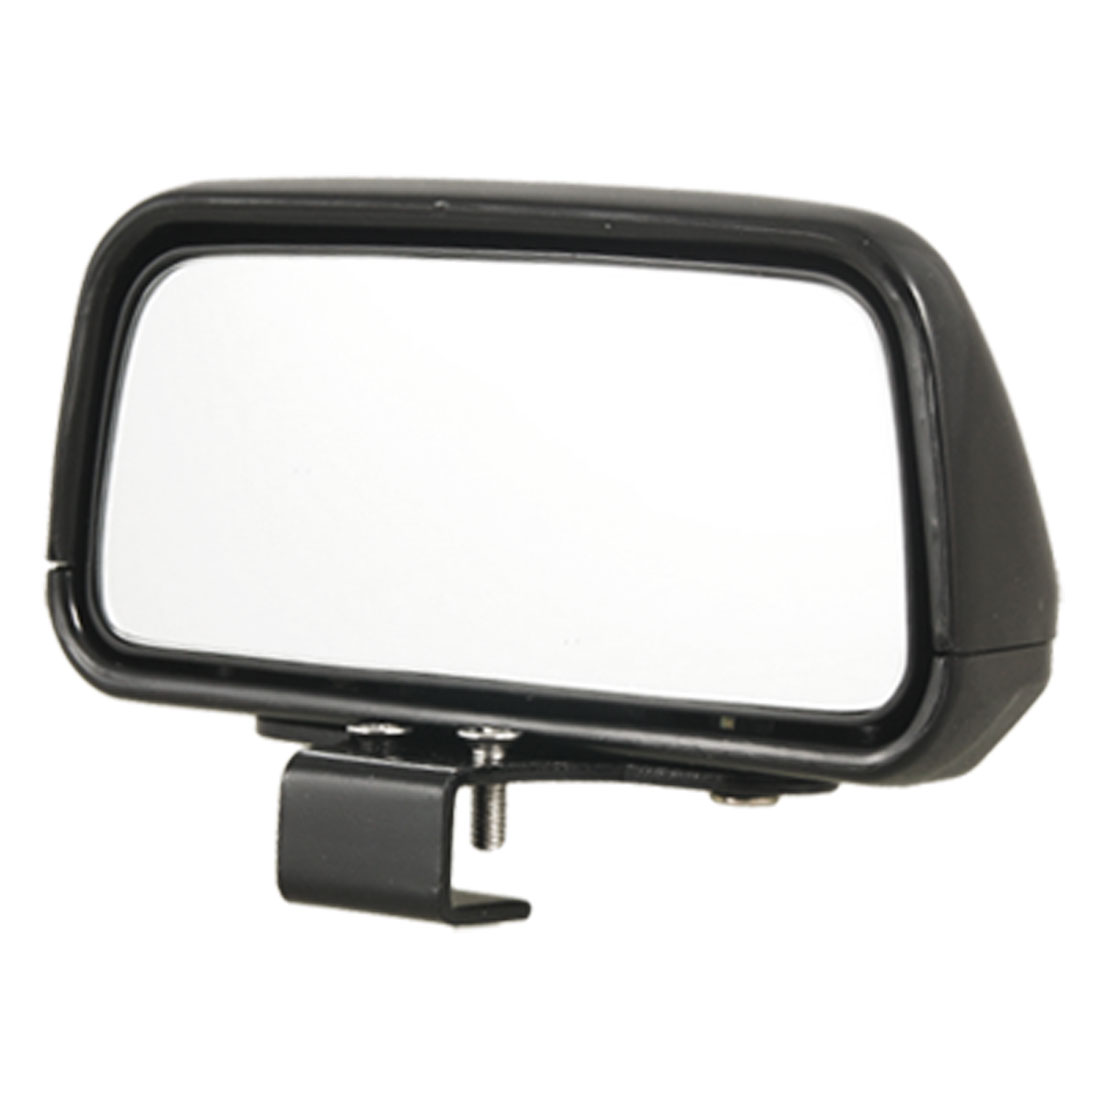 Black Rectangle Auto Car Vehicle Wide Angle Rear View Blind Spot Mirror